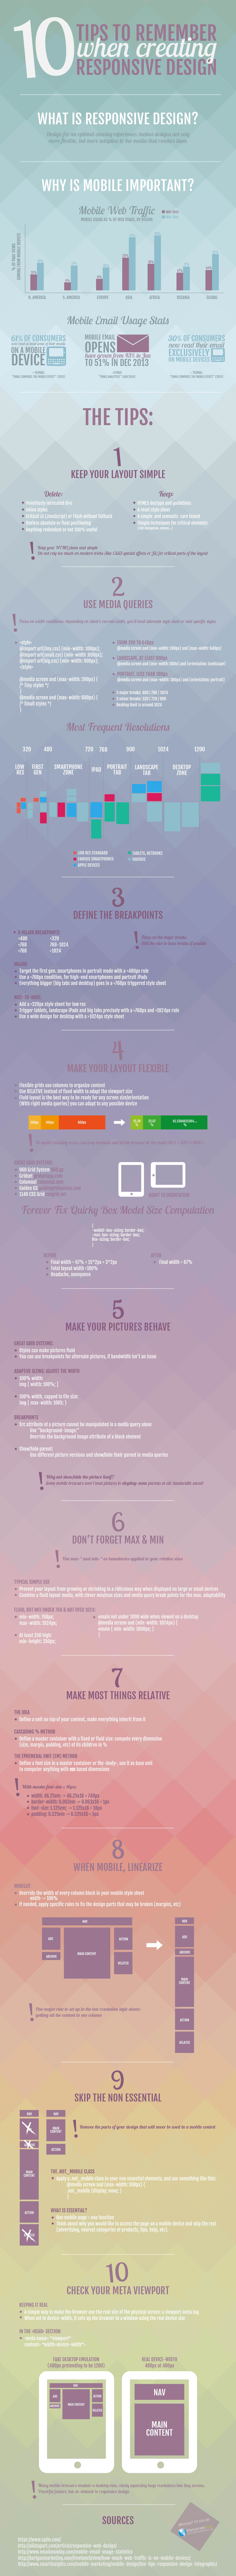 Responsive-tips-infographic1